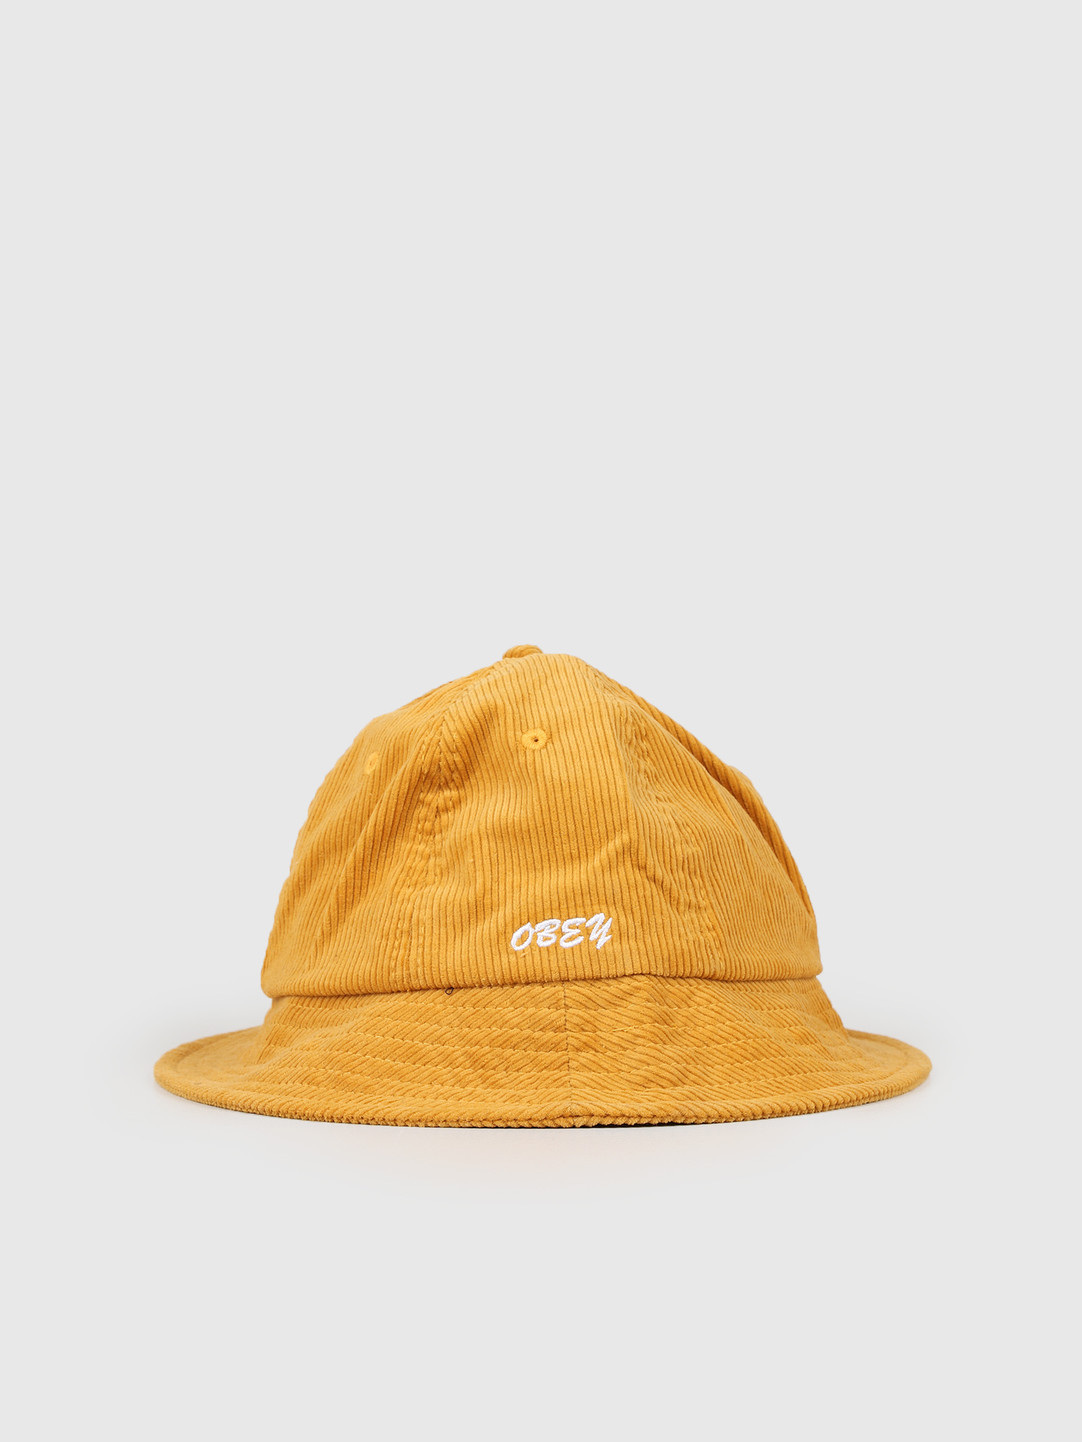 Obey Obey Tenderly Bucket Hat Golden Palm 100520027-GPM